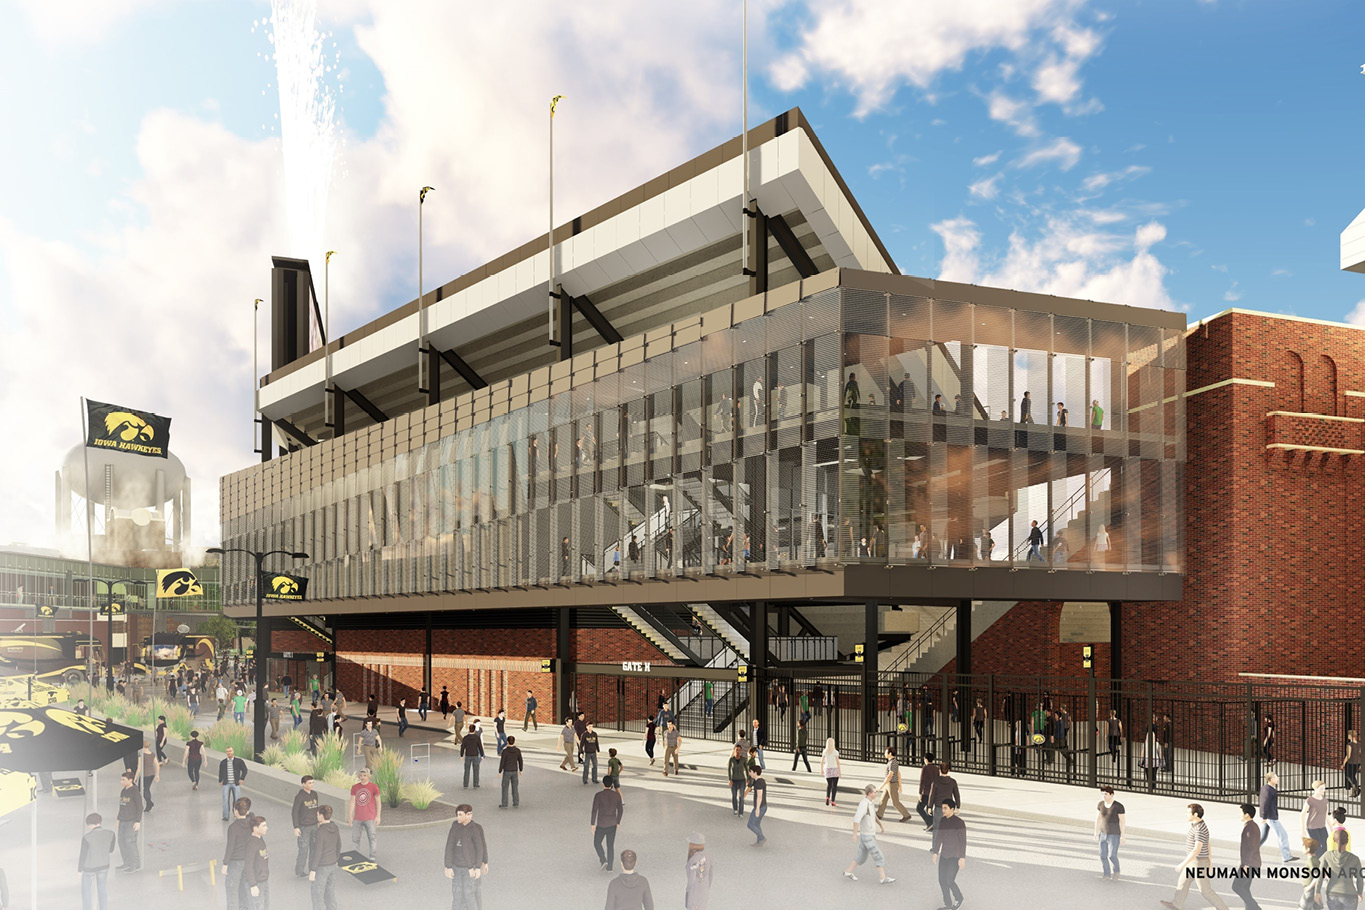 University Of Iowa Kinnick Stadium North End Zone Renovation